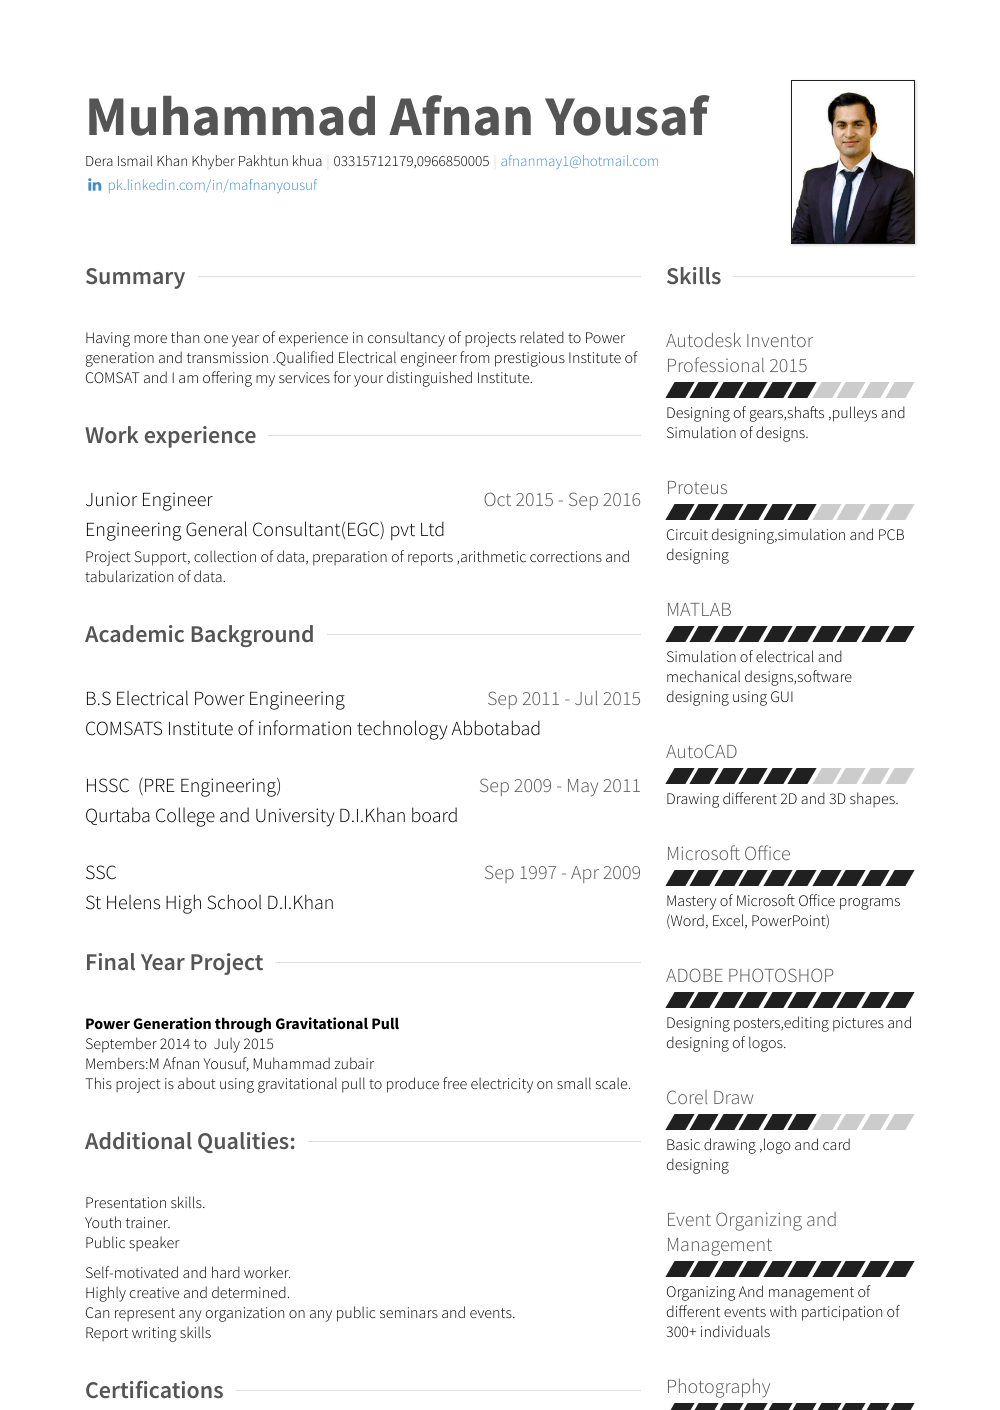 Internee - Resume Samples & Templates | VisualCV